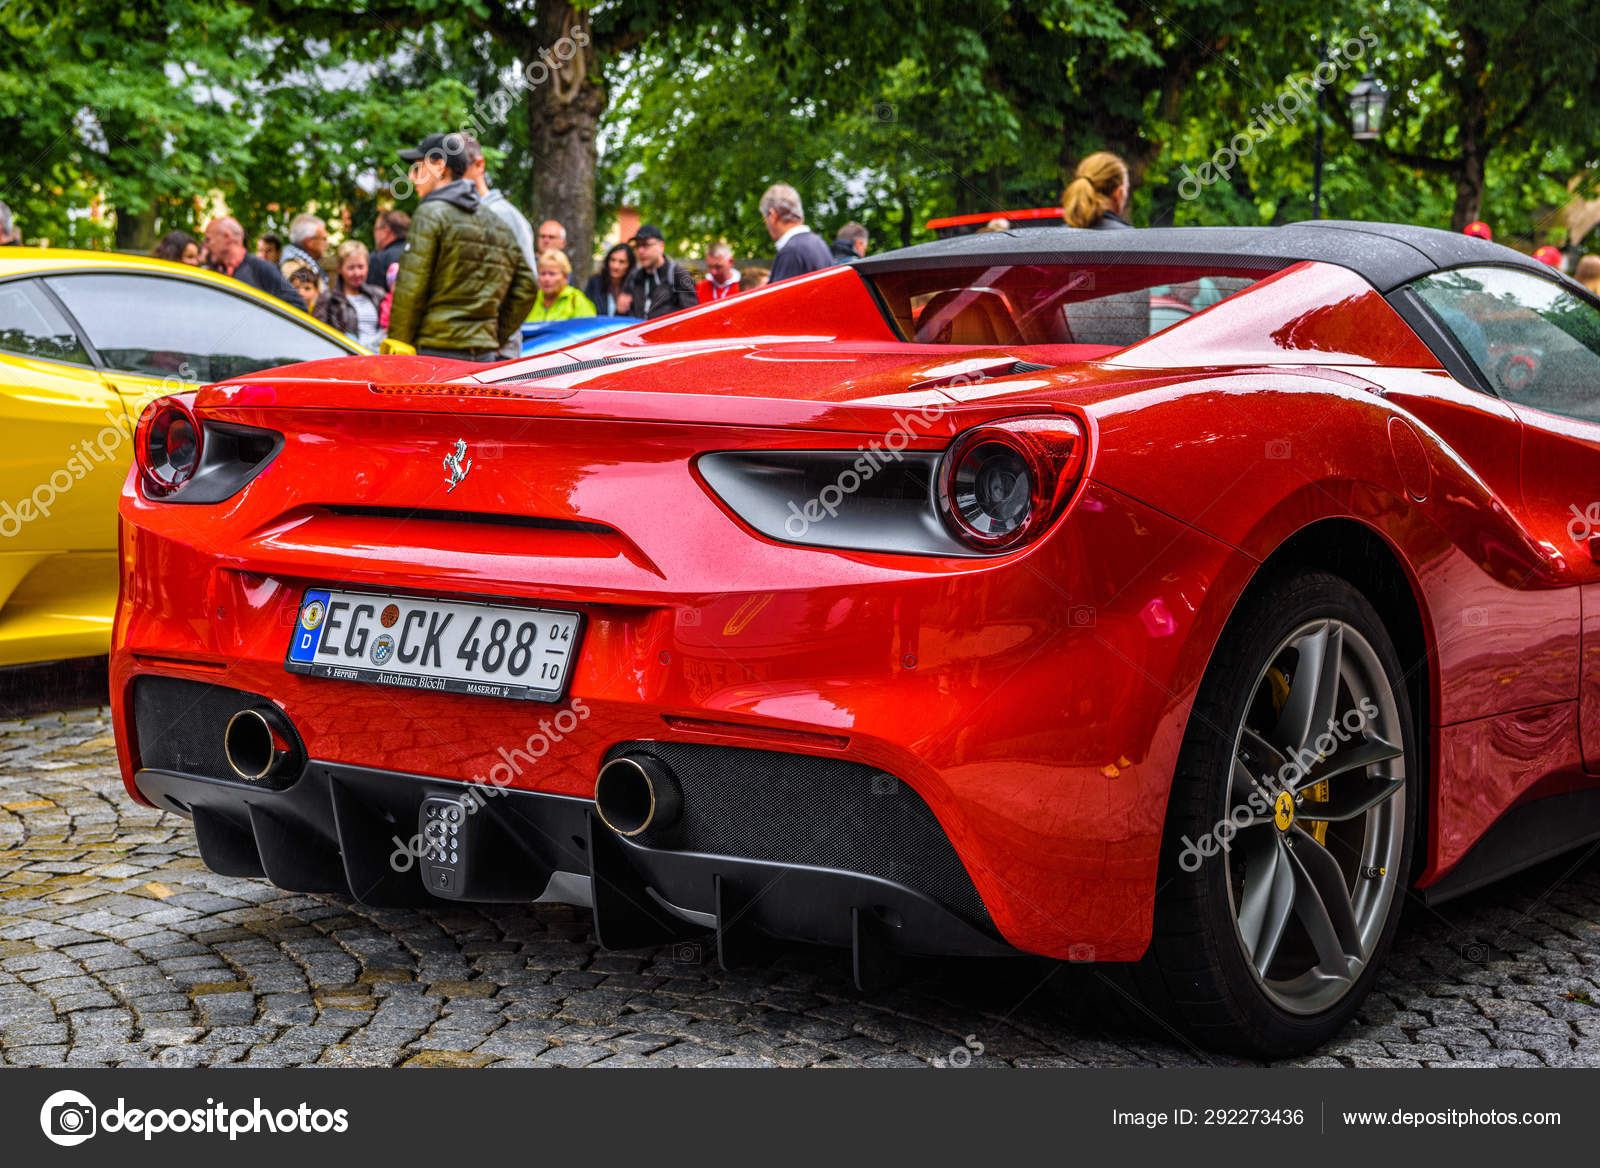 Germany Fulda Jul 2019 Rearview Lights Of Red Ferrari 488 Spider Type F142m Coupe Is A